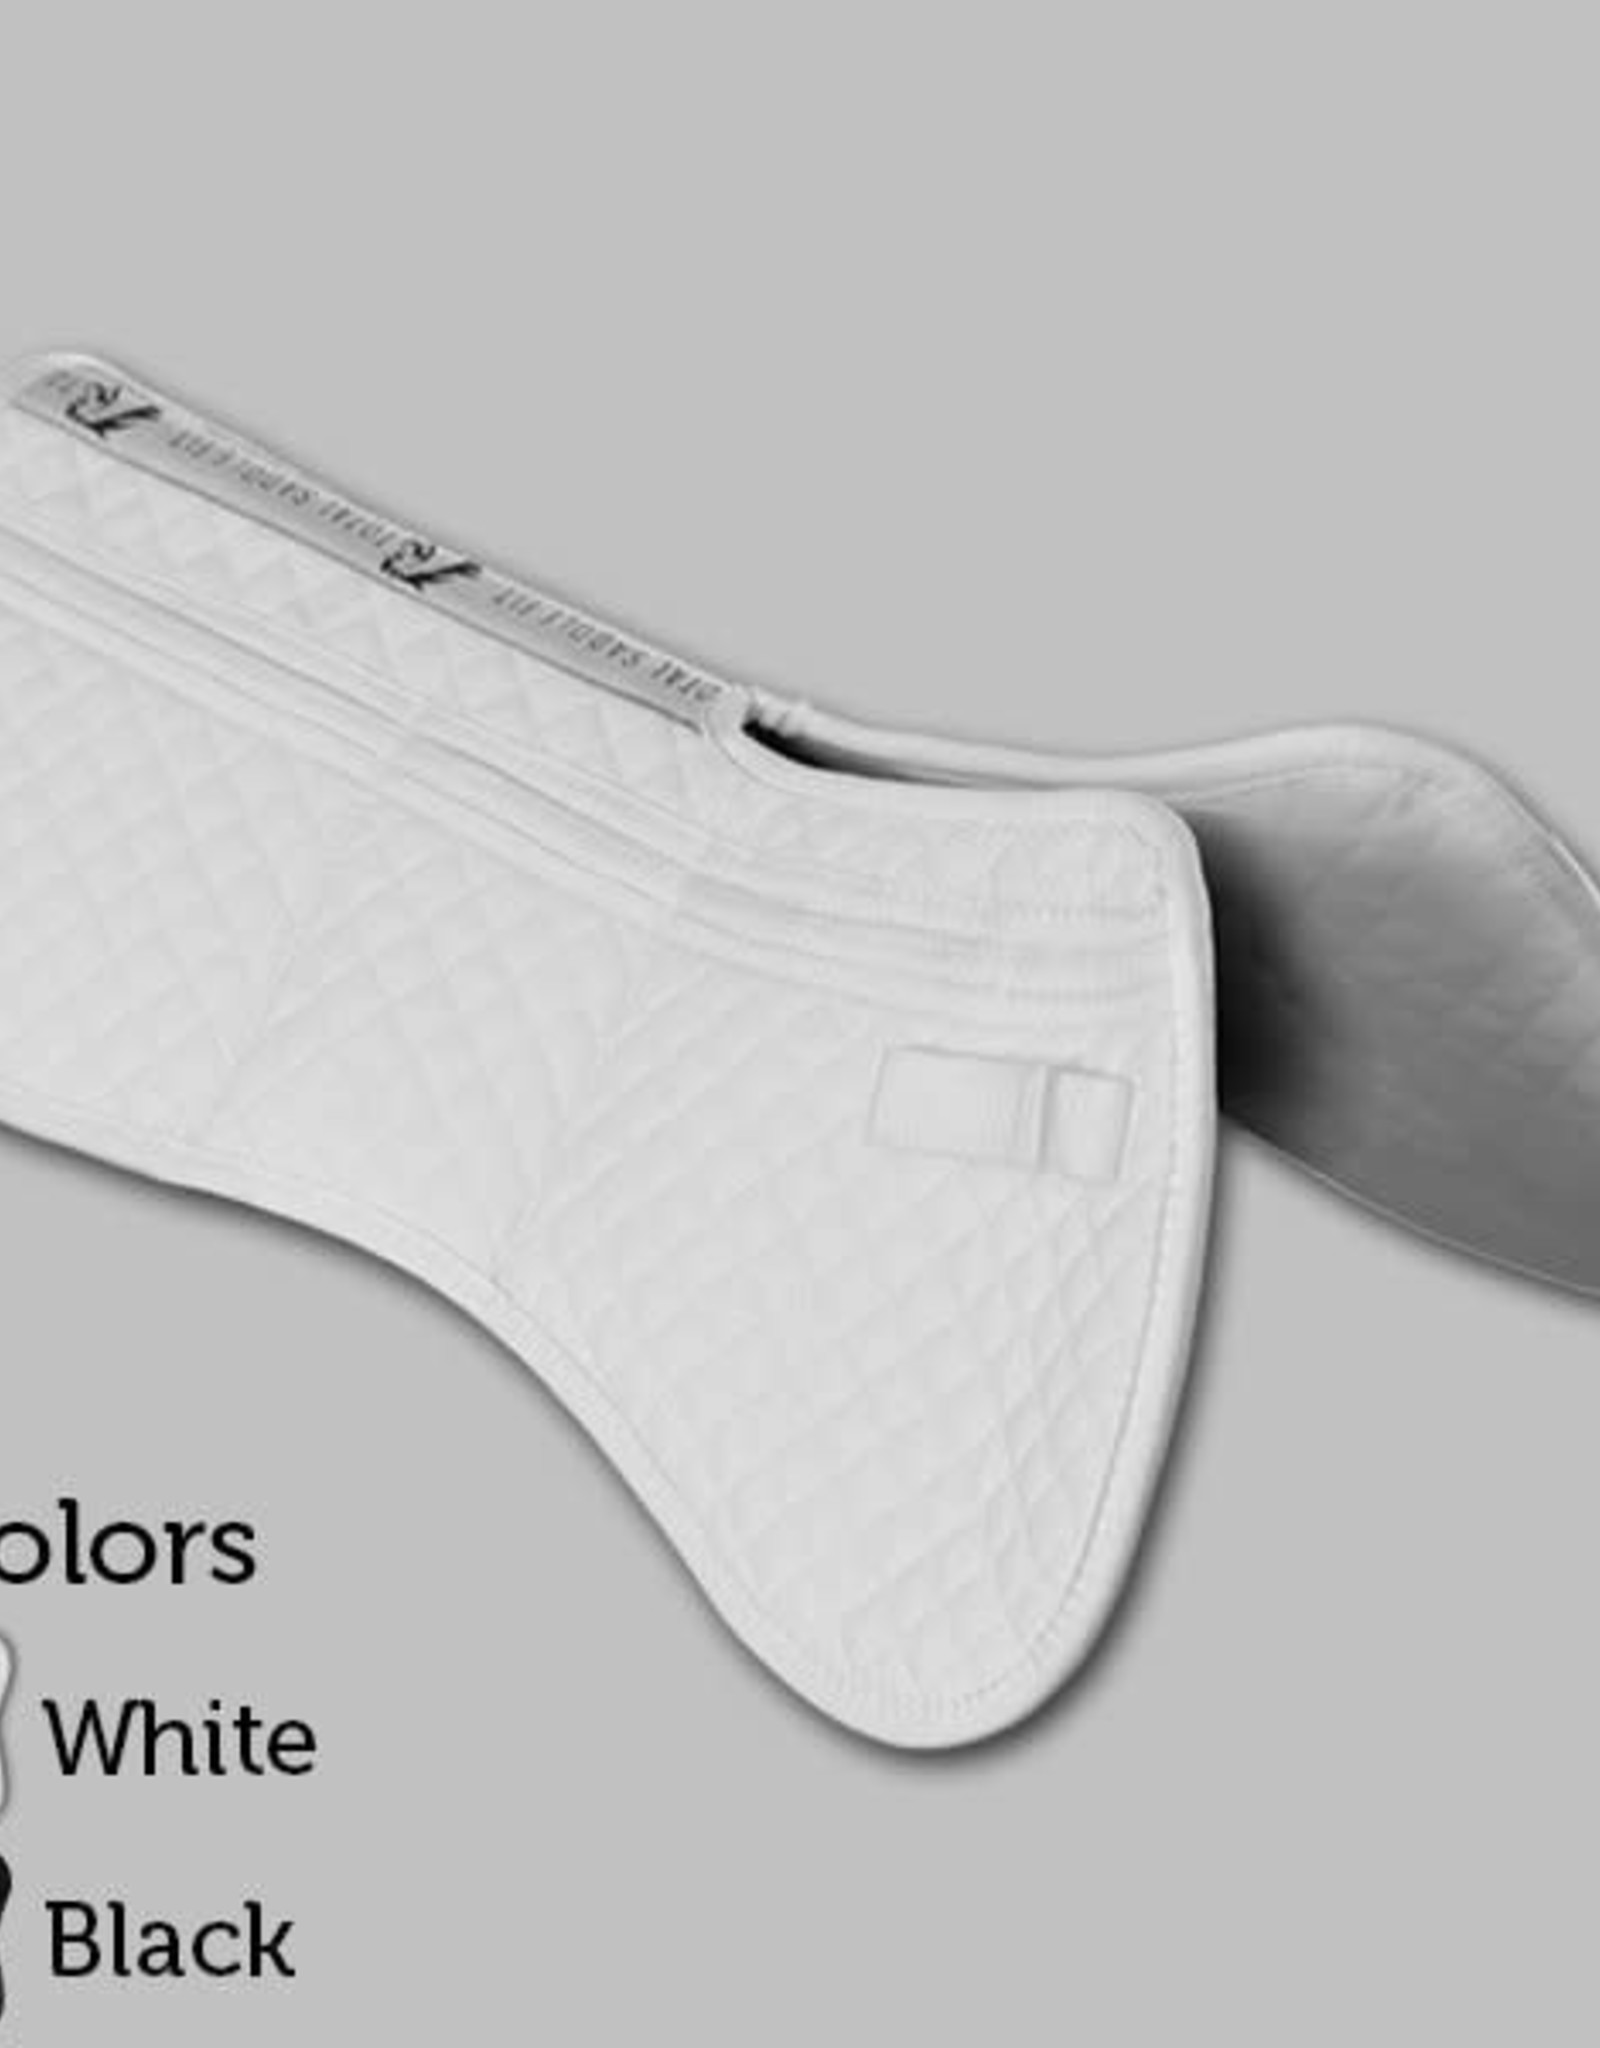 TOTAL SADDLE FIT Six Point Saddle Pad – Cotton Half Pad w/ Wither Freedom™